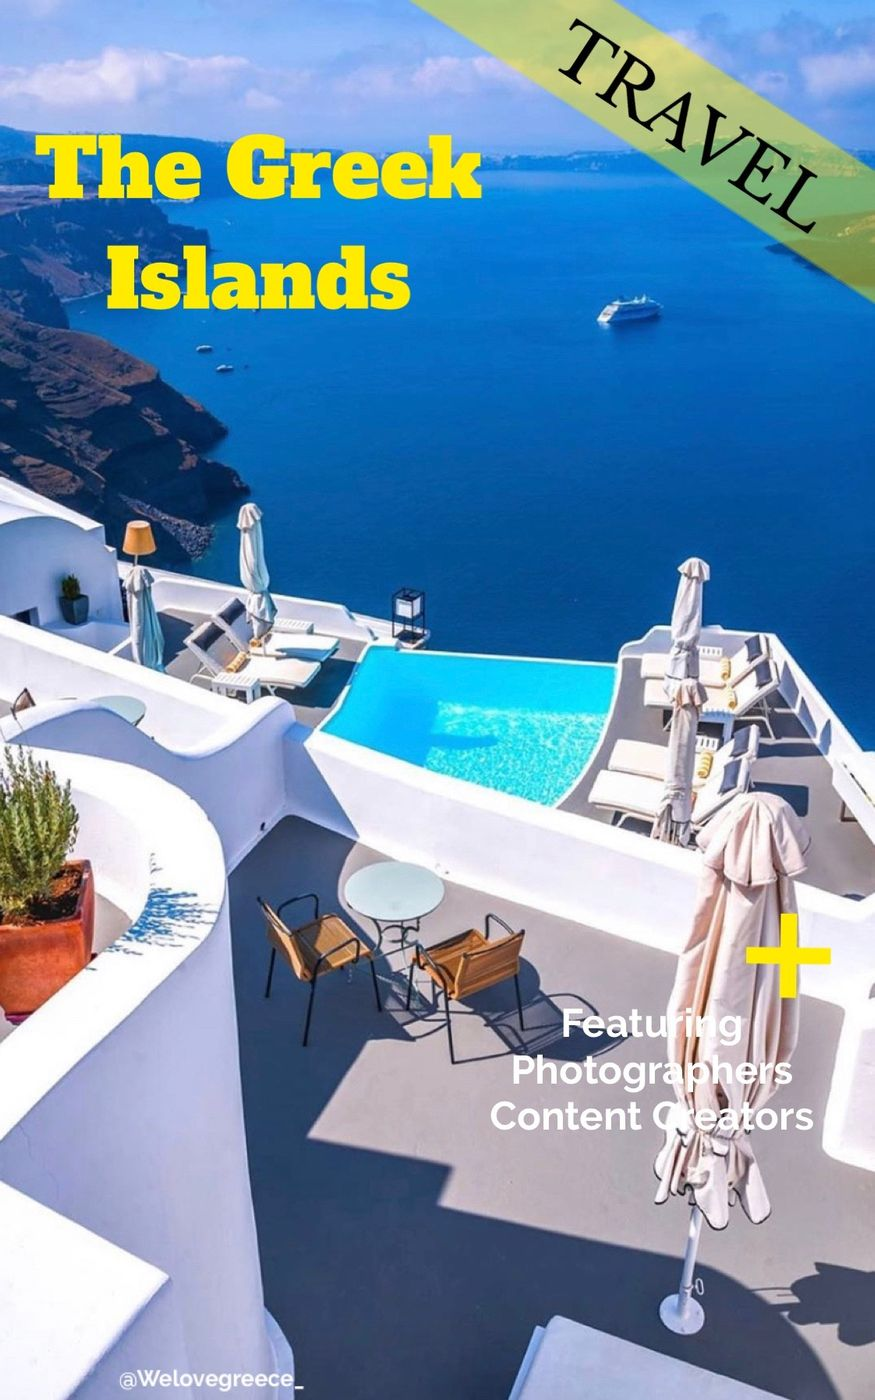 Featuring content creators as photographers | Greek Islands 😎